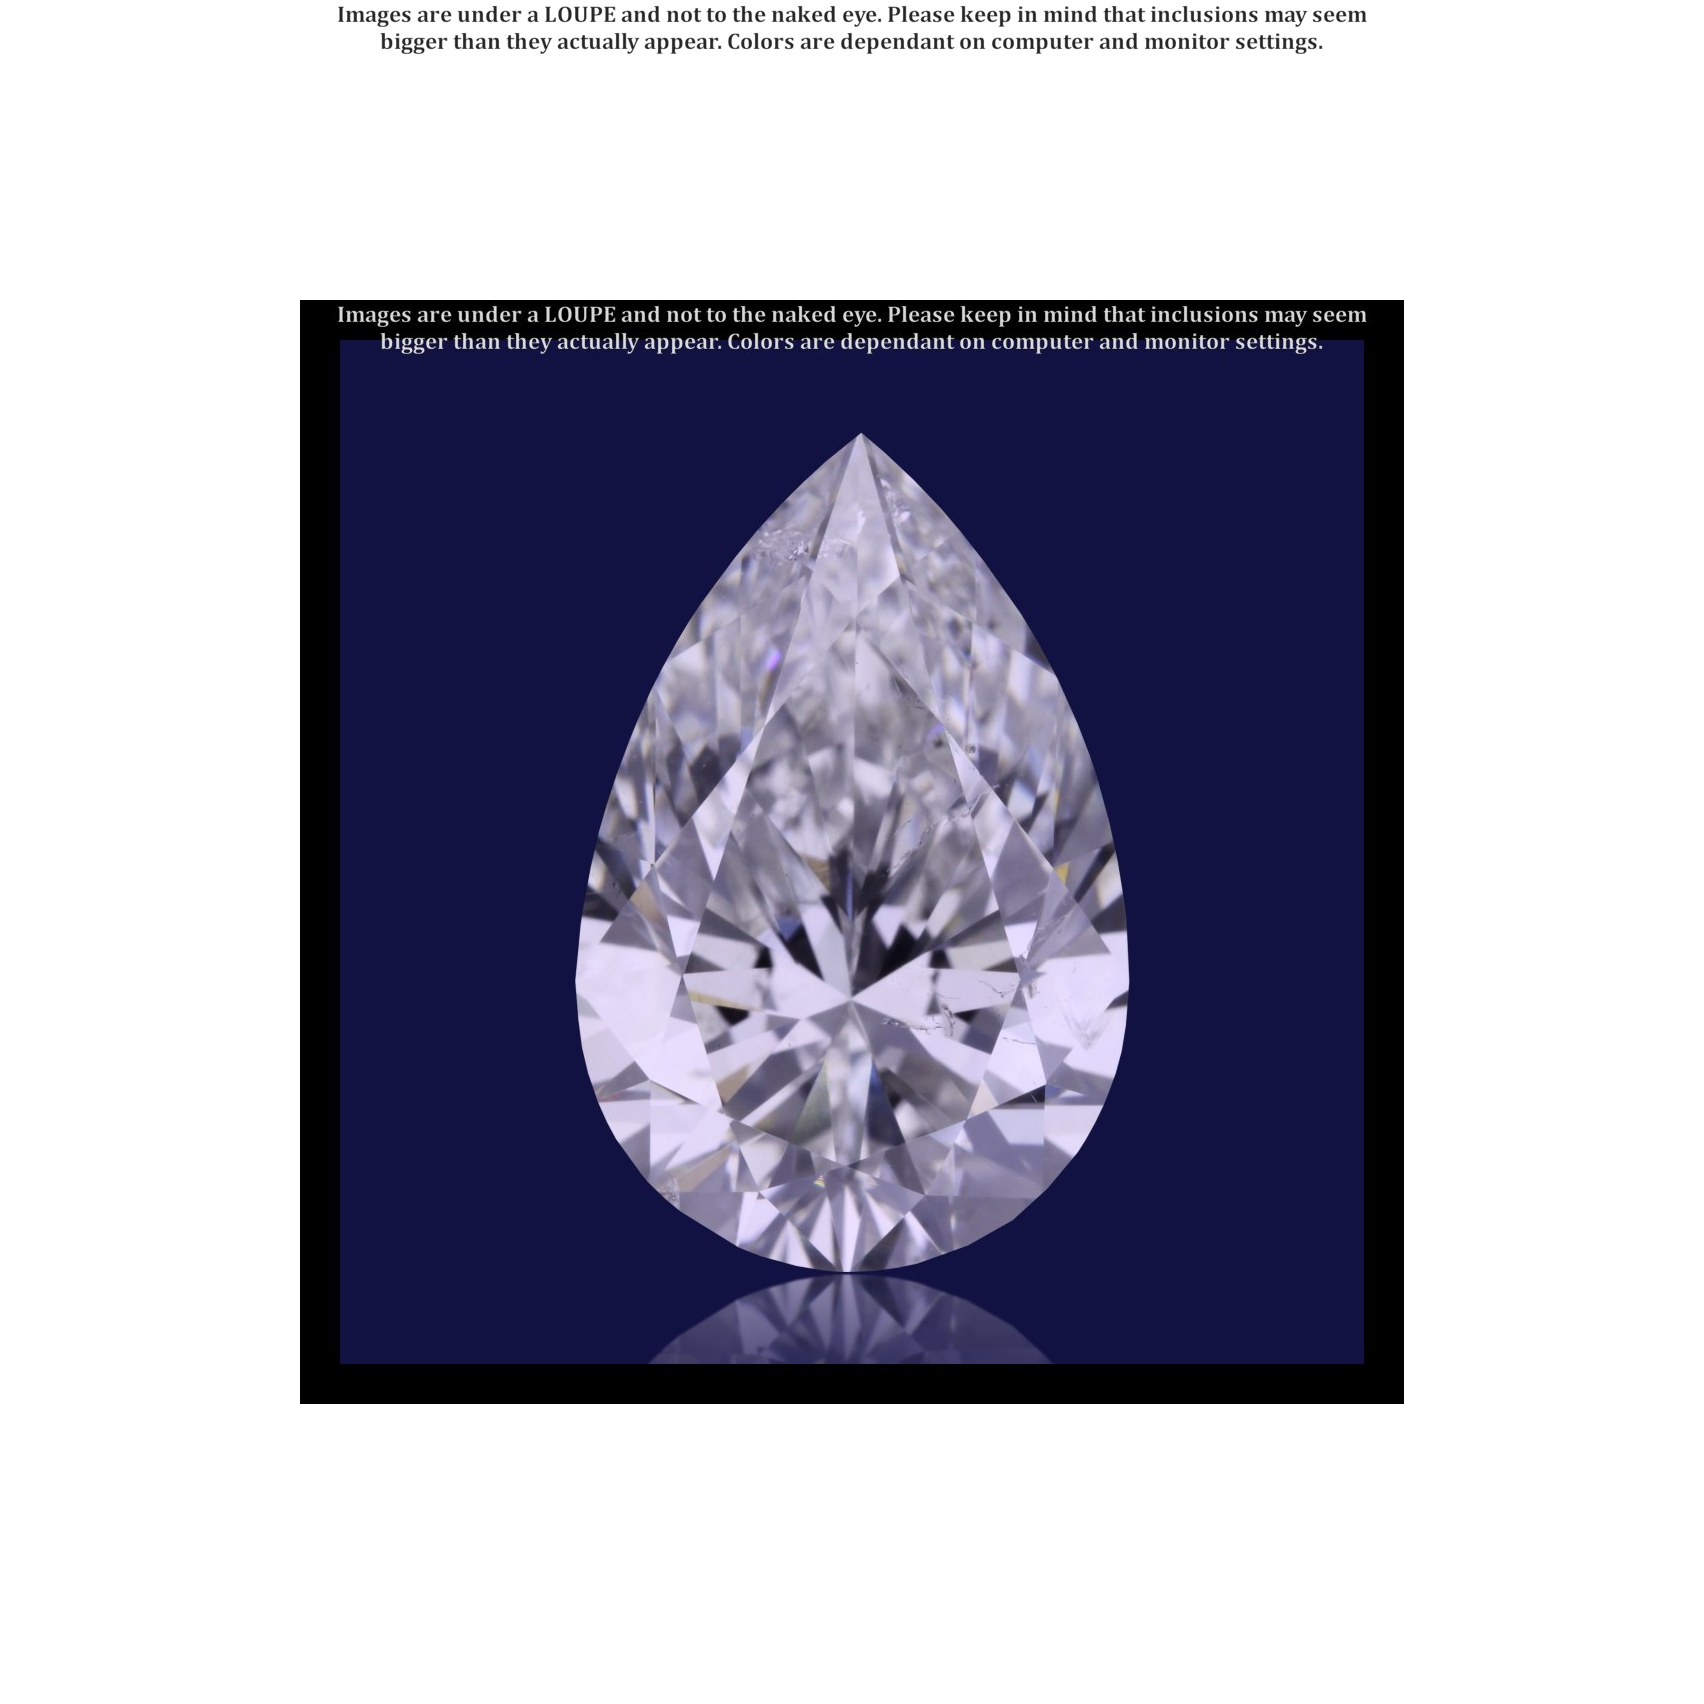 Arthur's Jewelry - Diamond Image - .00678